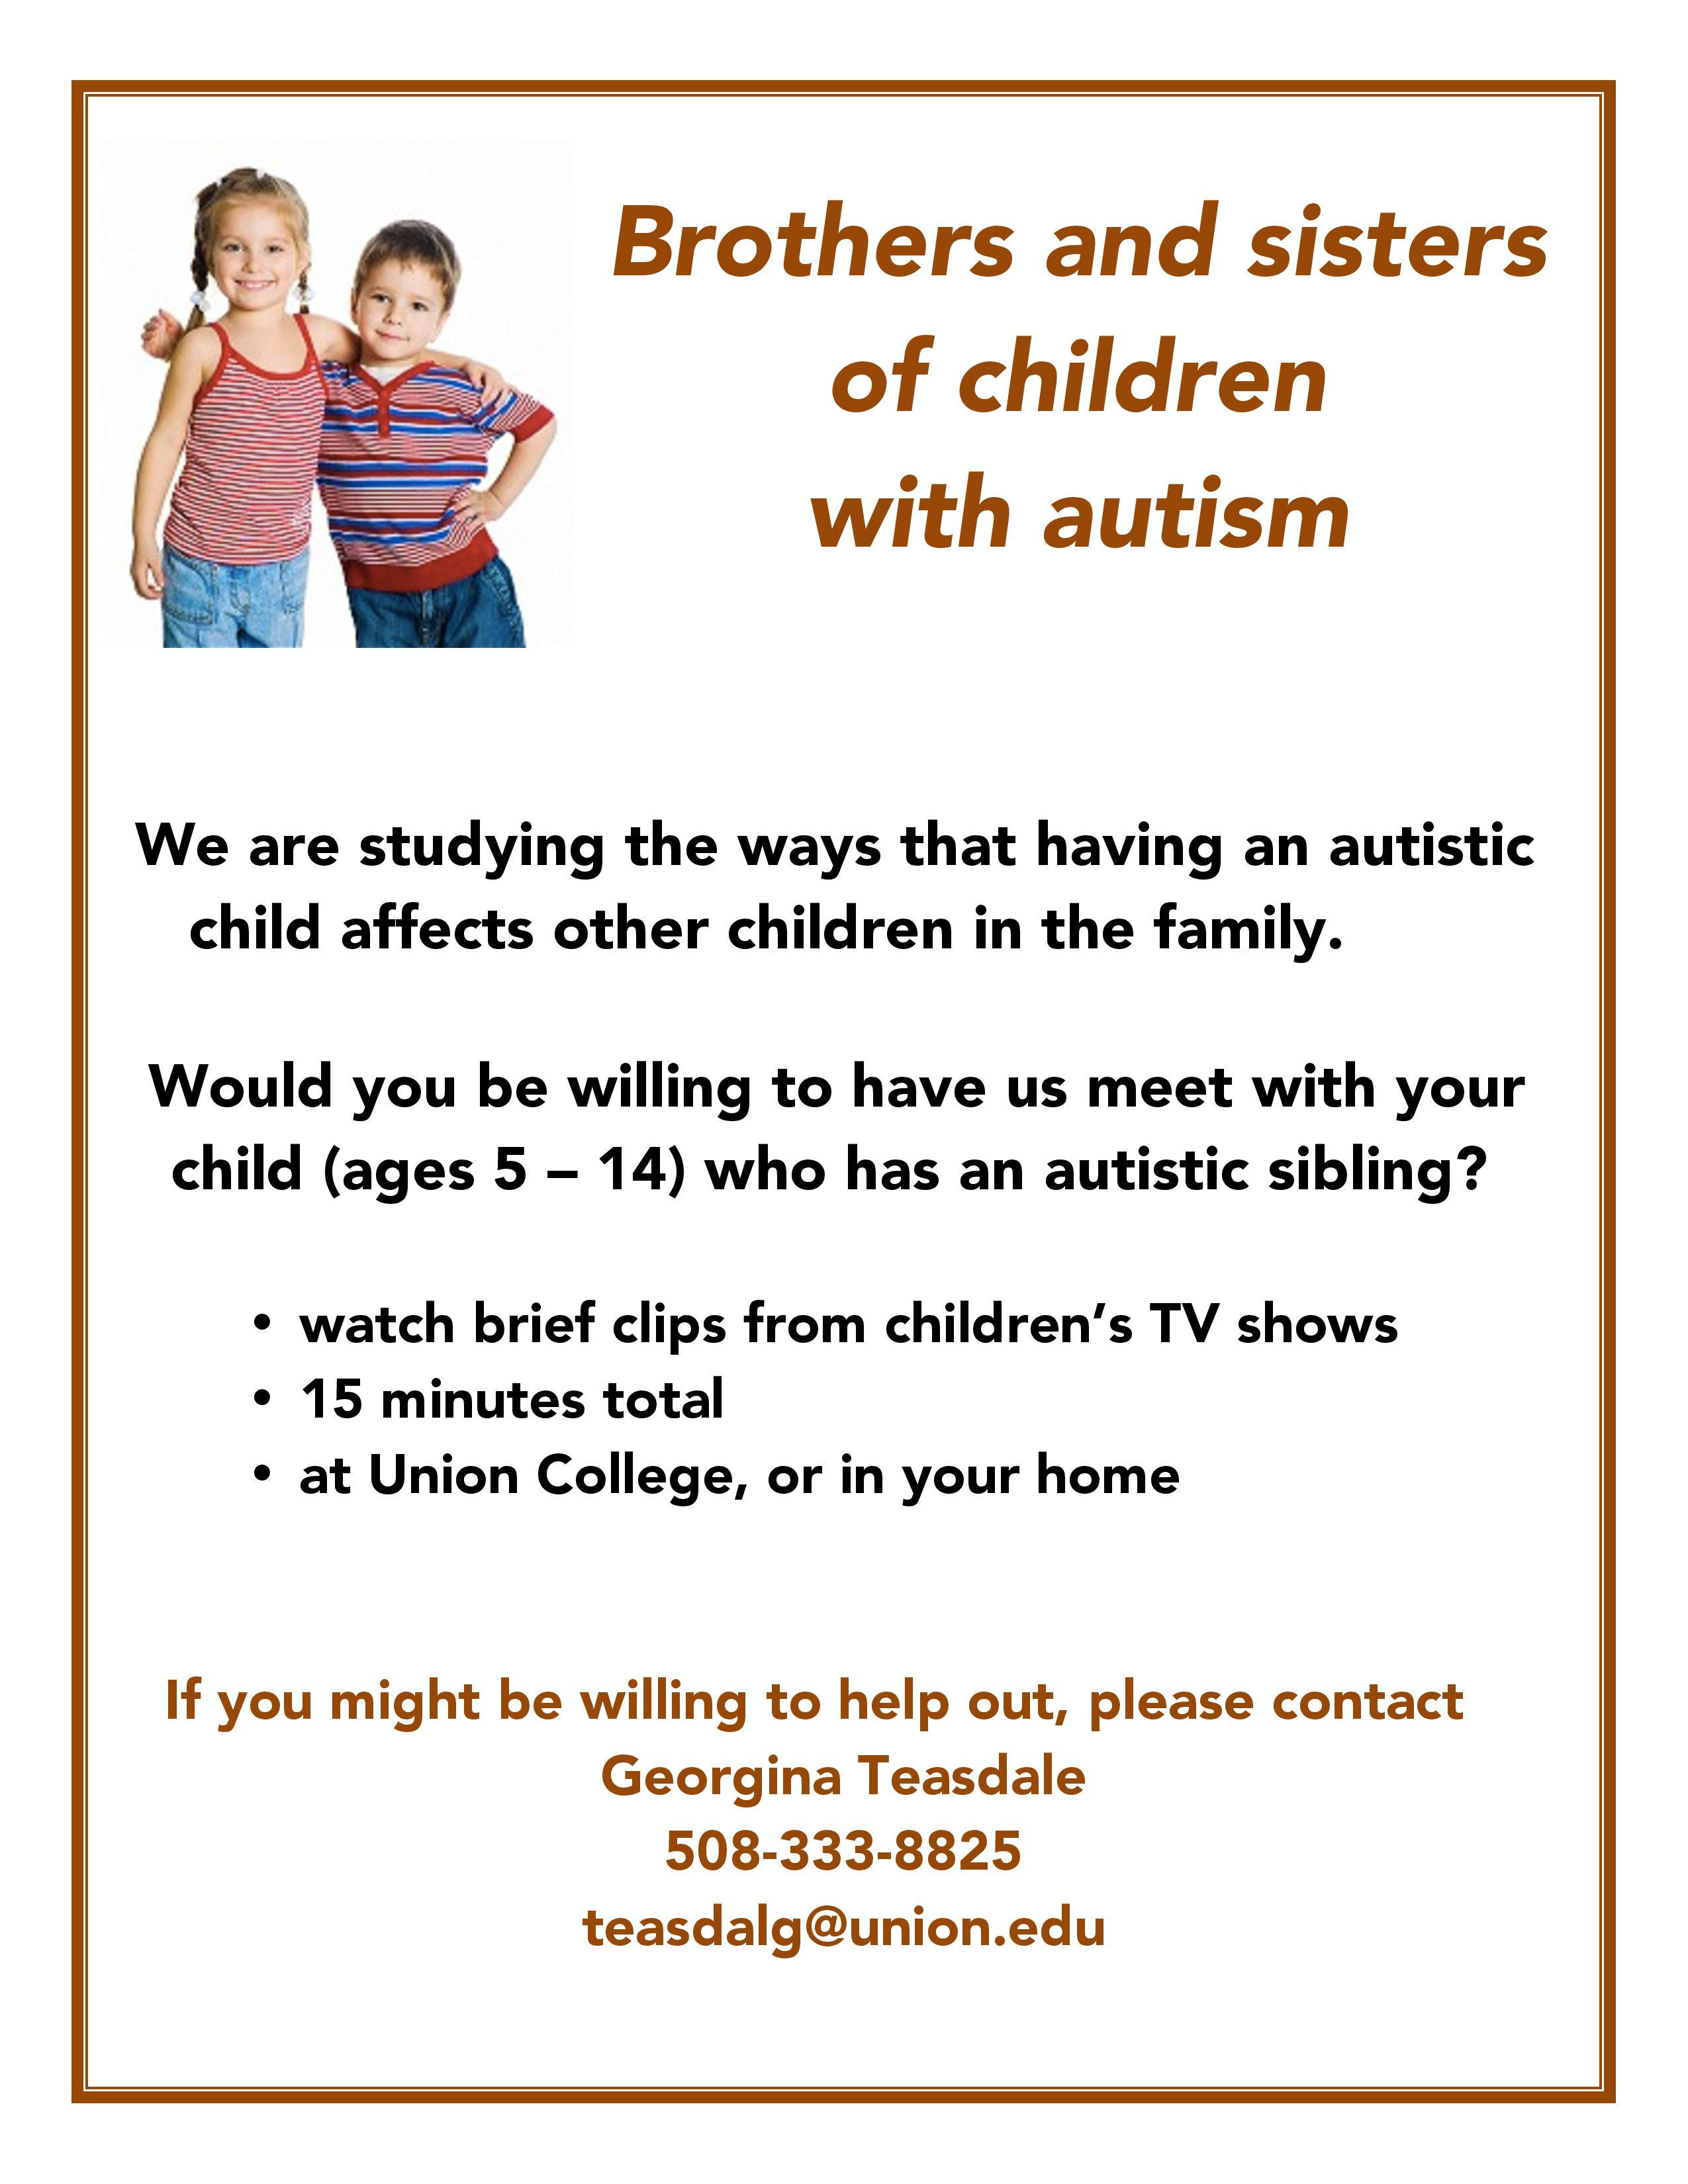 HOW DOES HAVING AN AUTISTIC CHILD AFFECT THE OTHER CHILDREN IN THE